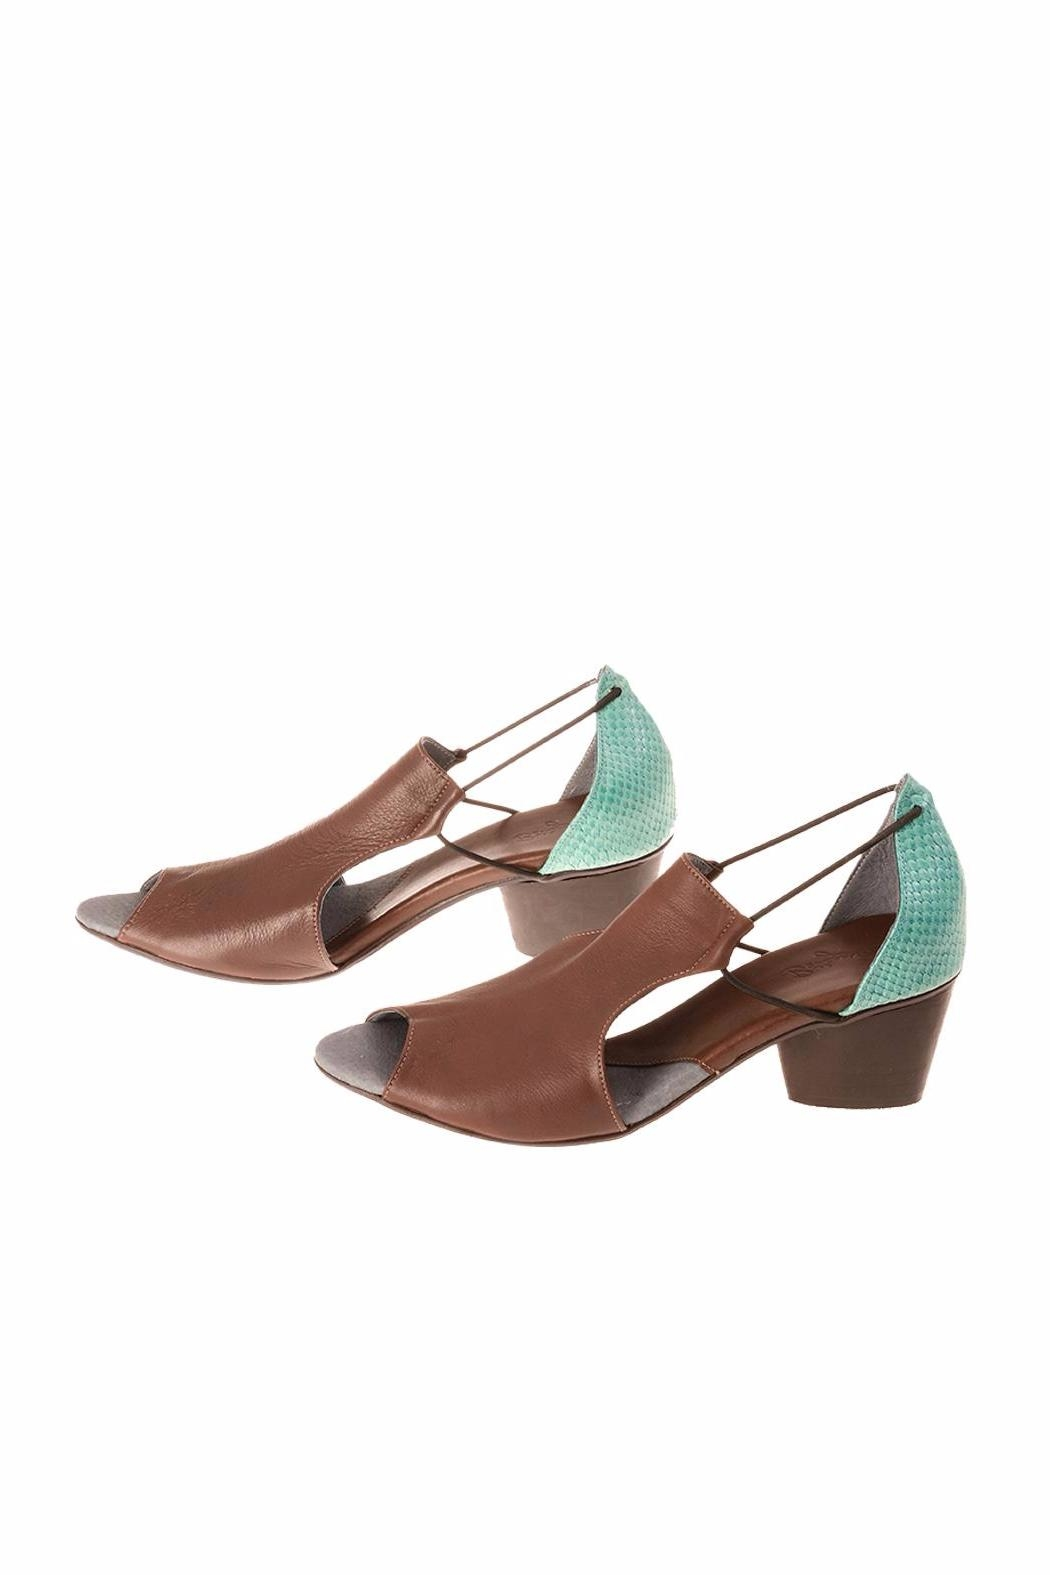 Bottega Bash Brown & Turquoise Heel - Front Cropped Image